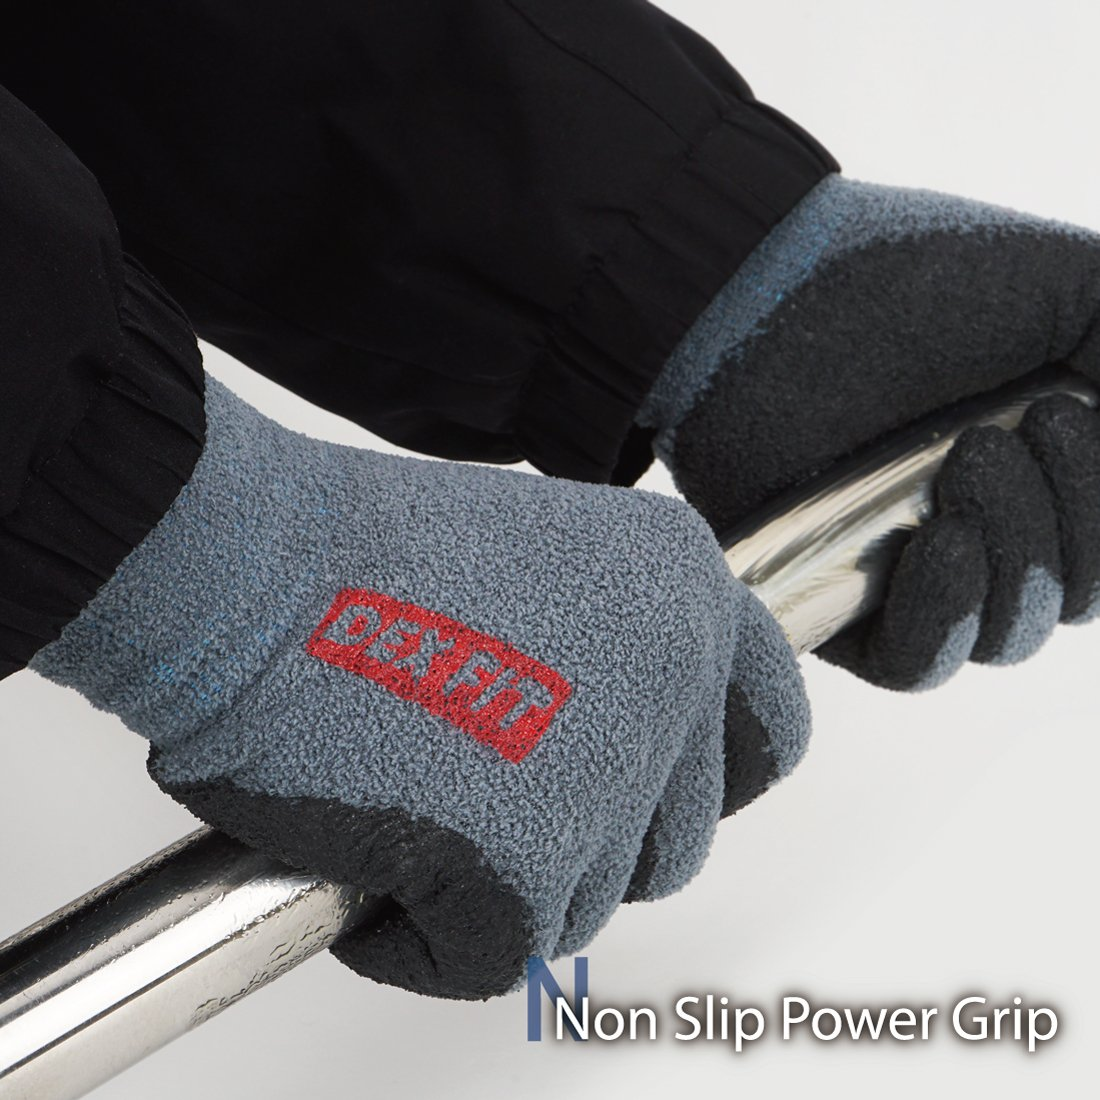 DEX FIT Warm Fleece Work Gloves NR450, Comfort Spandex Stretch Fit, Power Grip, Thin & Lightweight, Durable Nitrile Coated, Machine Washable, Grey Medium 3 Pairs Pack by DEX FIT (Image #3)